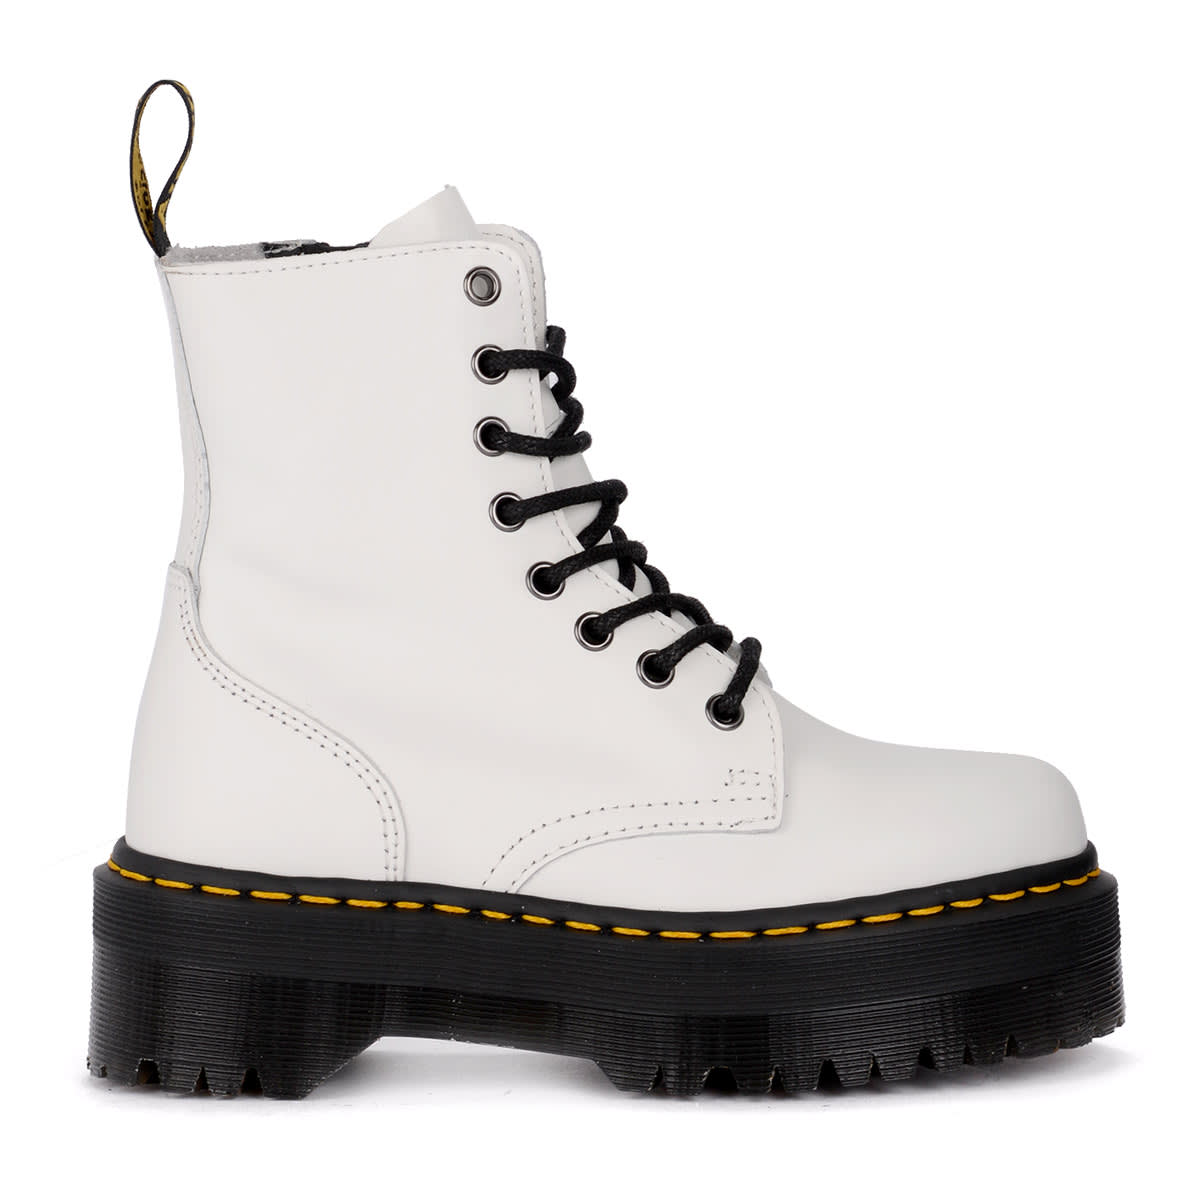 a0a055ae5d4 Dr. Martens Jadon White Leather Ankle Boots With Maxi Sole